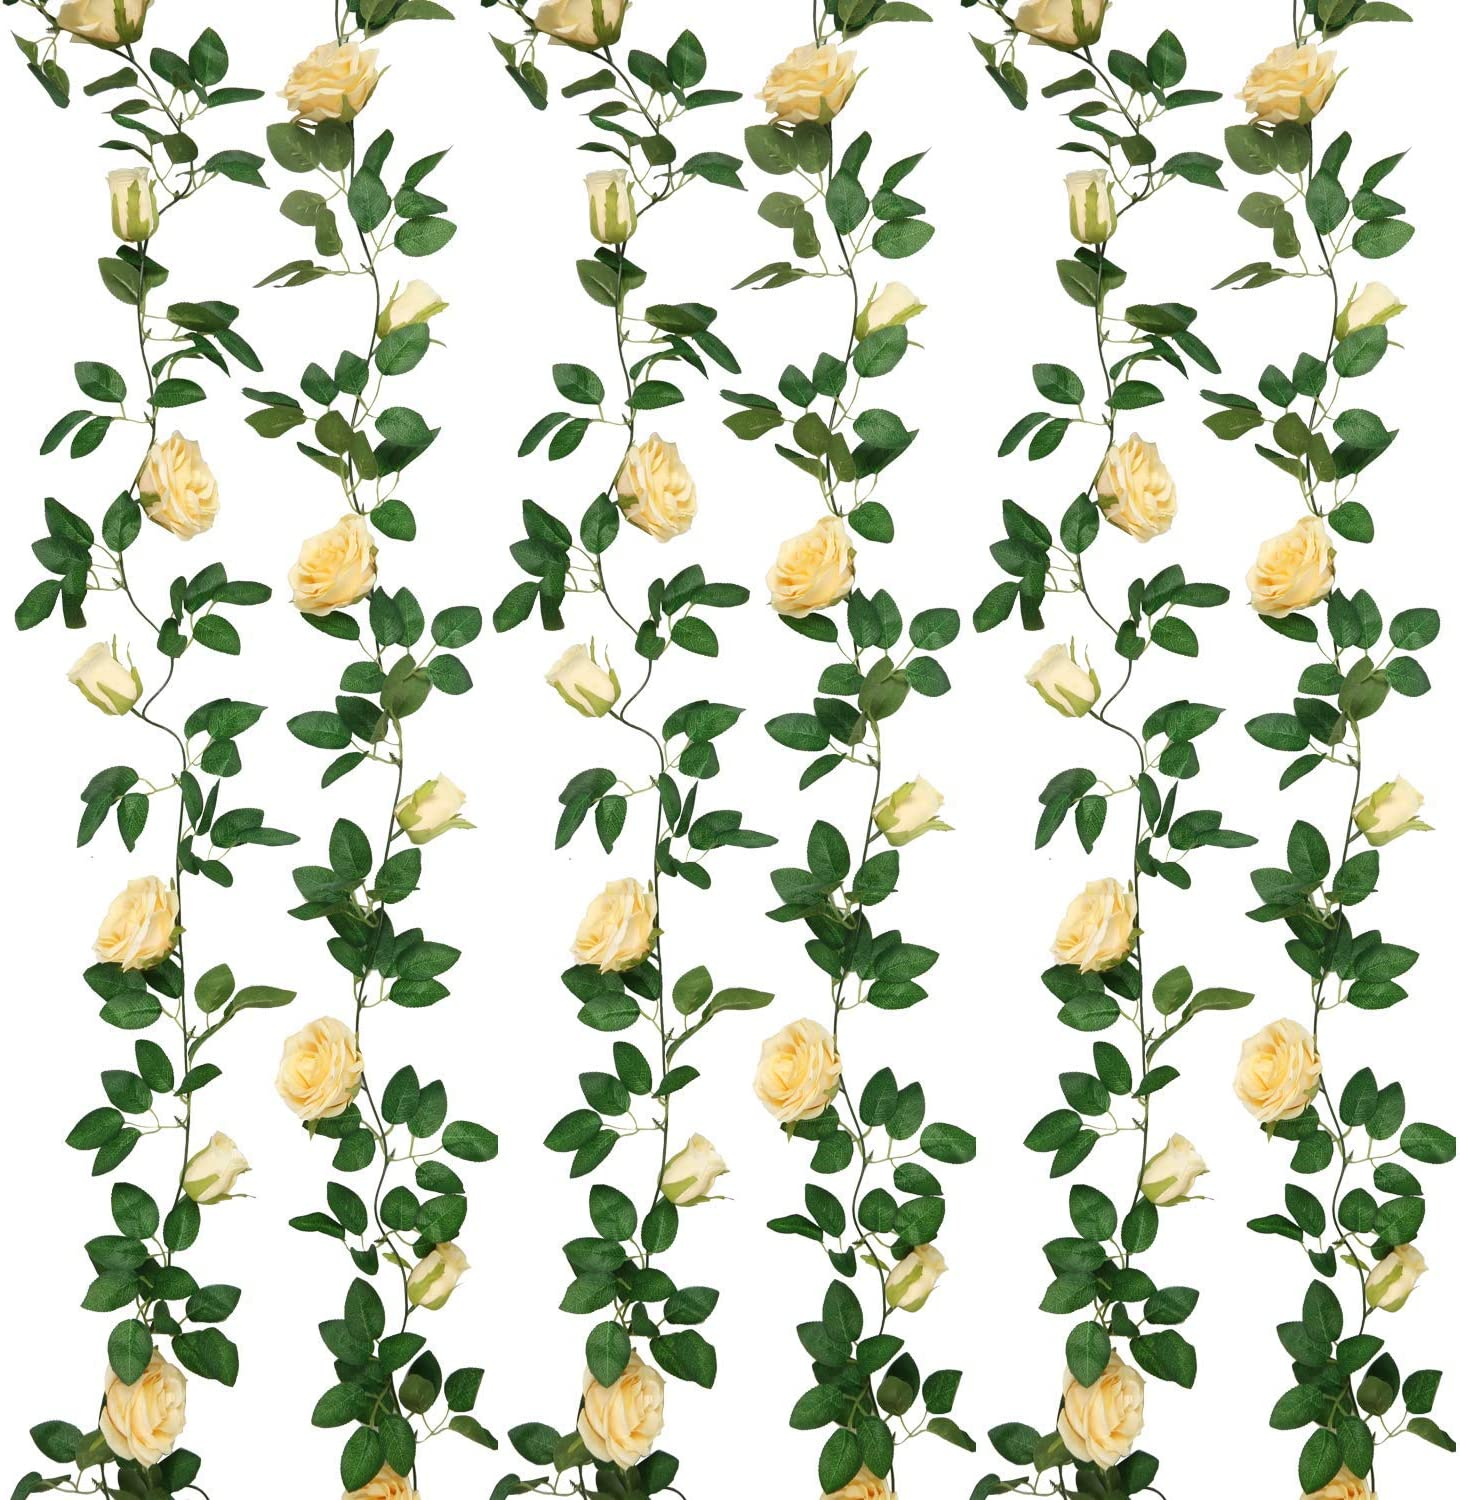 SHACOS Artificial Rose Garlands Rose Vines Leaves Hanging Rose Flower Vine Home Wedding Party Decor (Deep Champagne, 4)